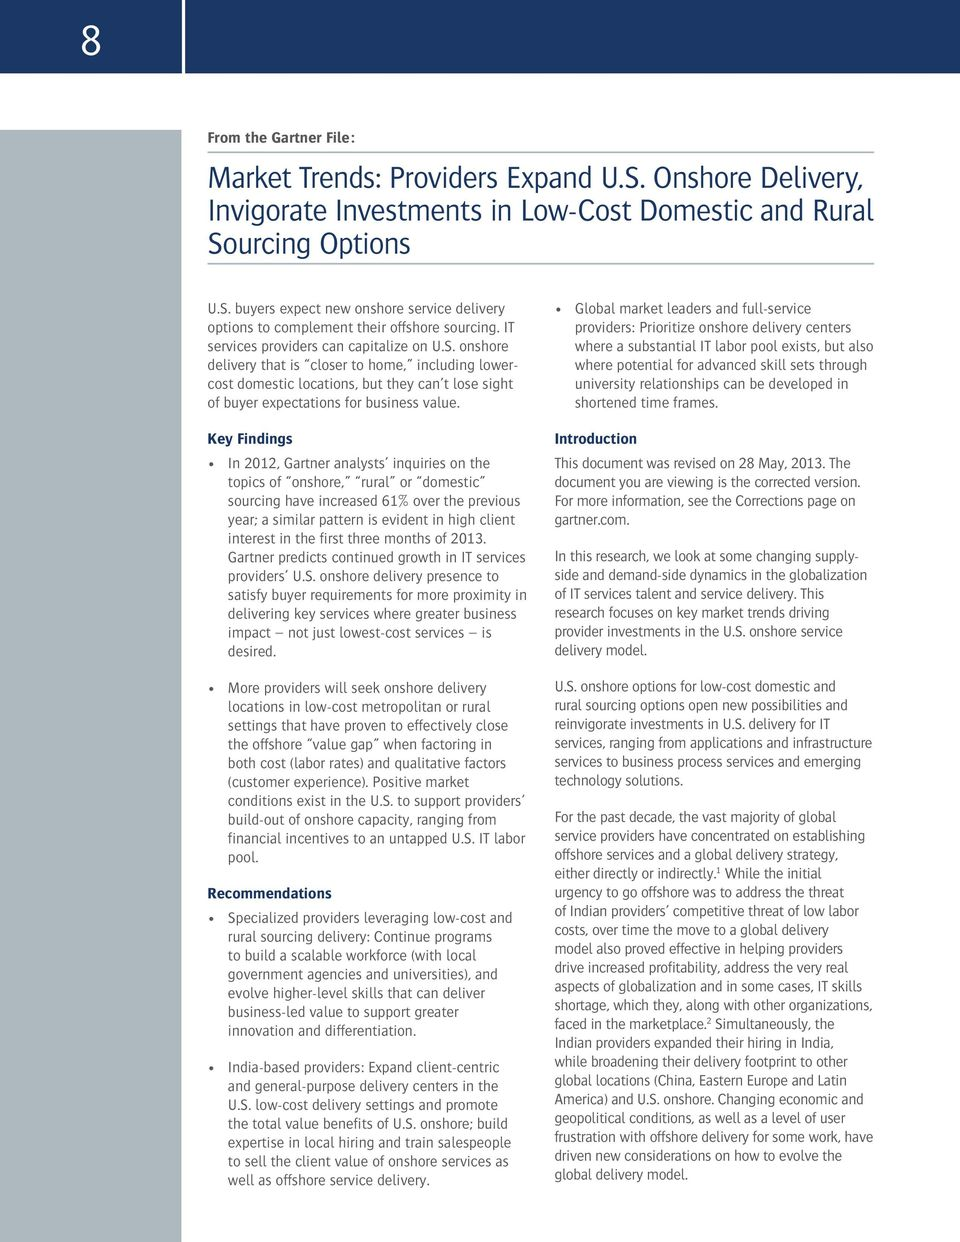 Key Findings In 2012, Gartner analysts inquiries on the topics of onshore, rural or domestic sourcing have increased 61% over the previous year; a similar pattern is evident in high client interest